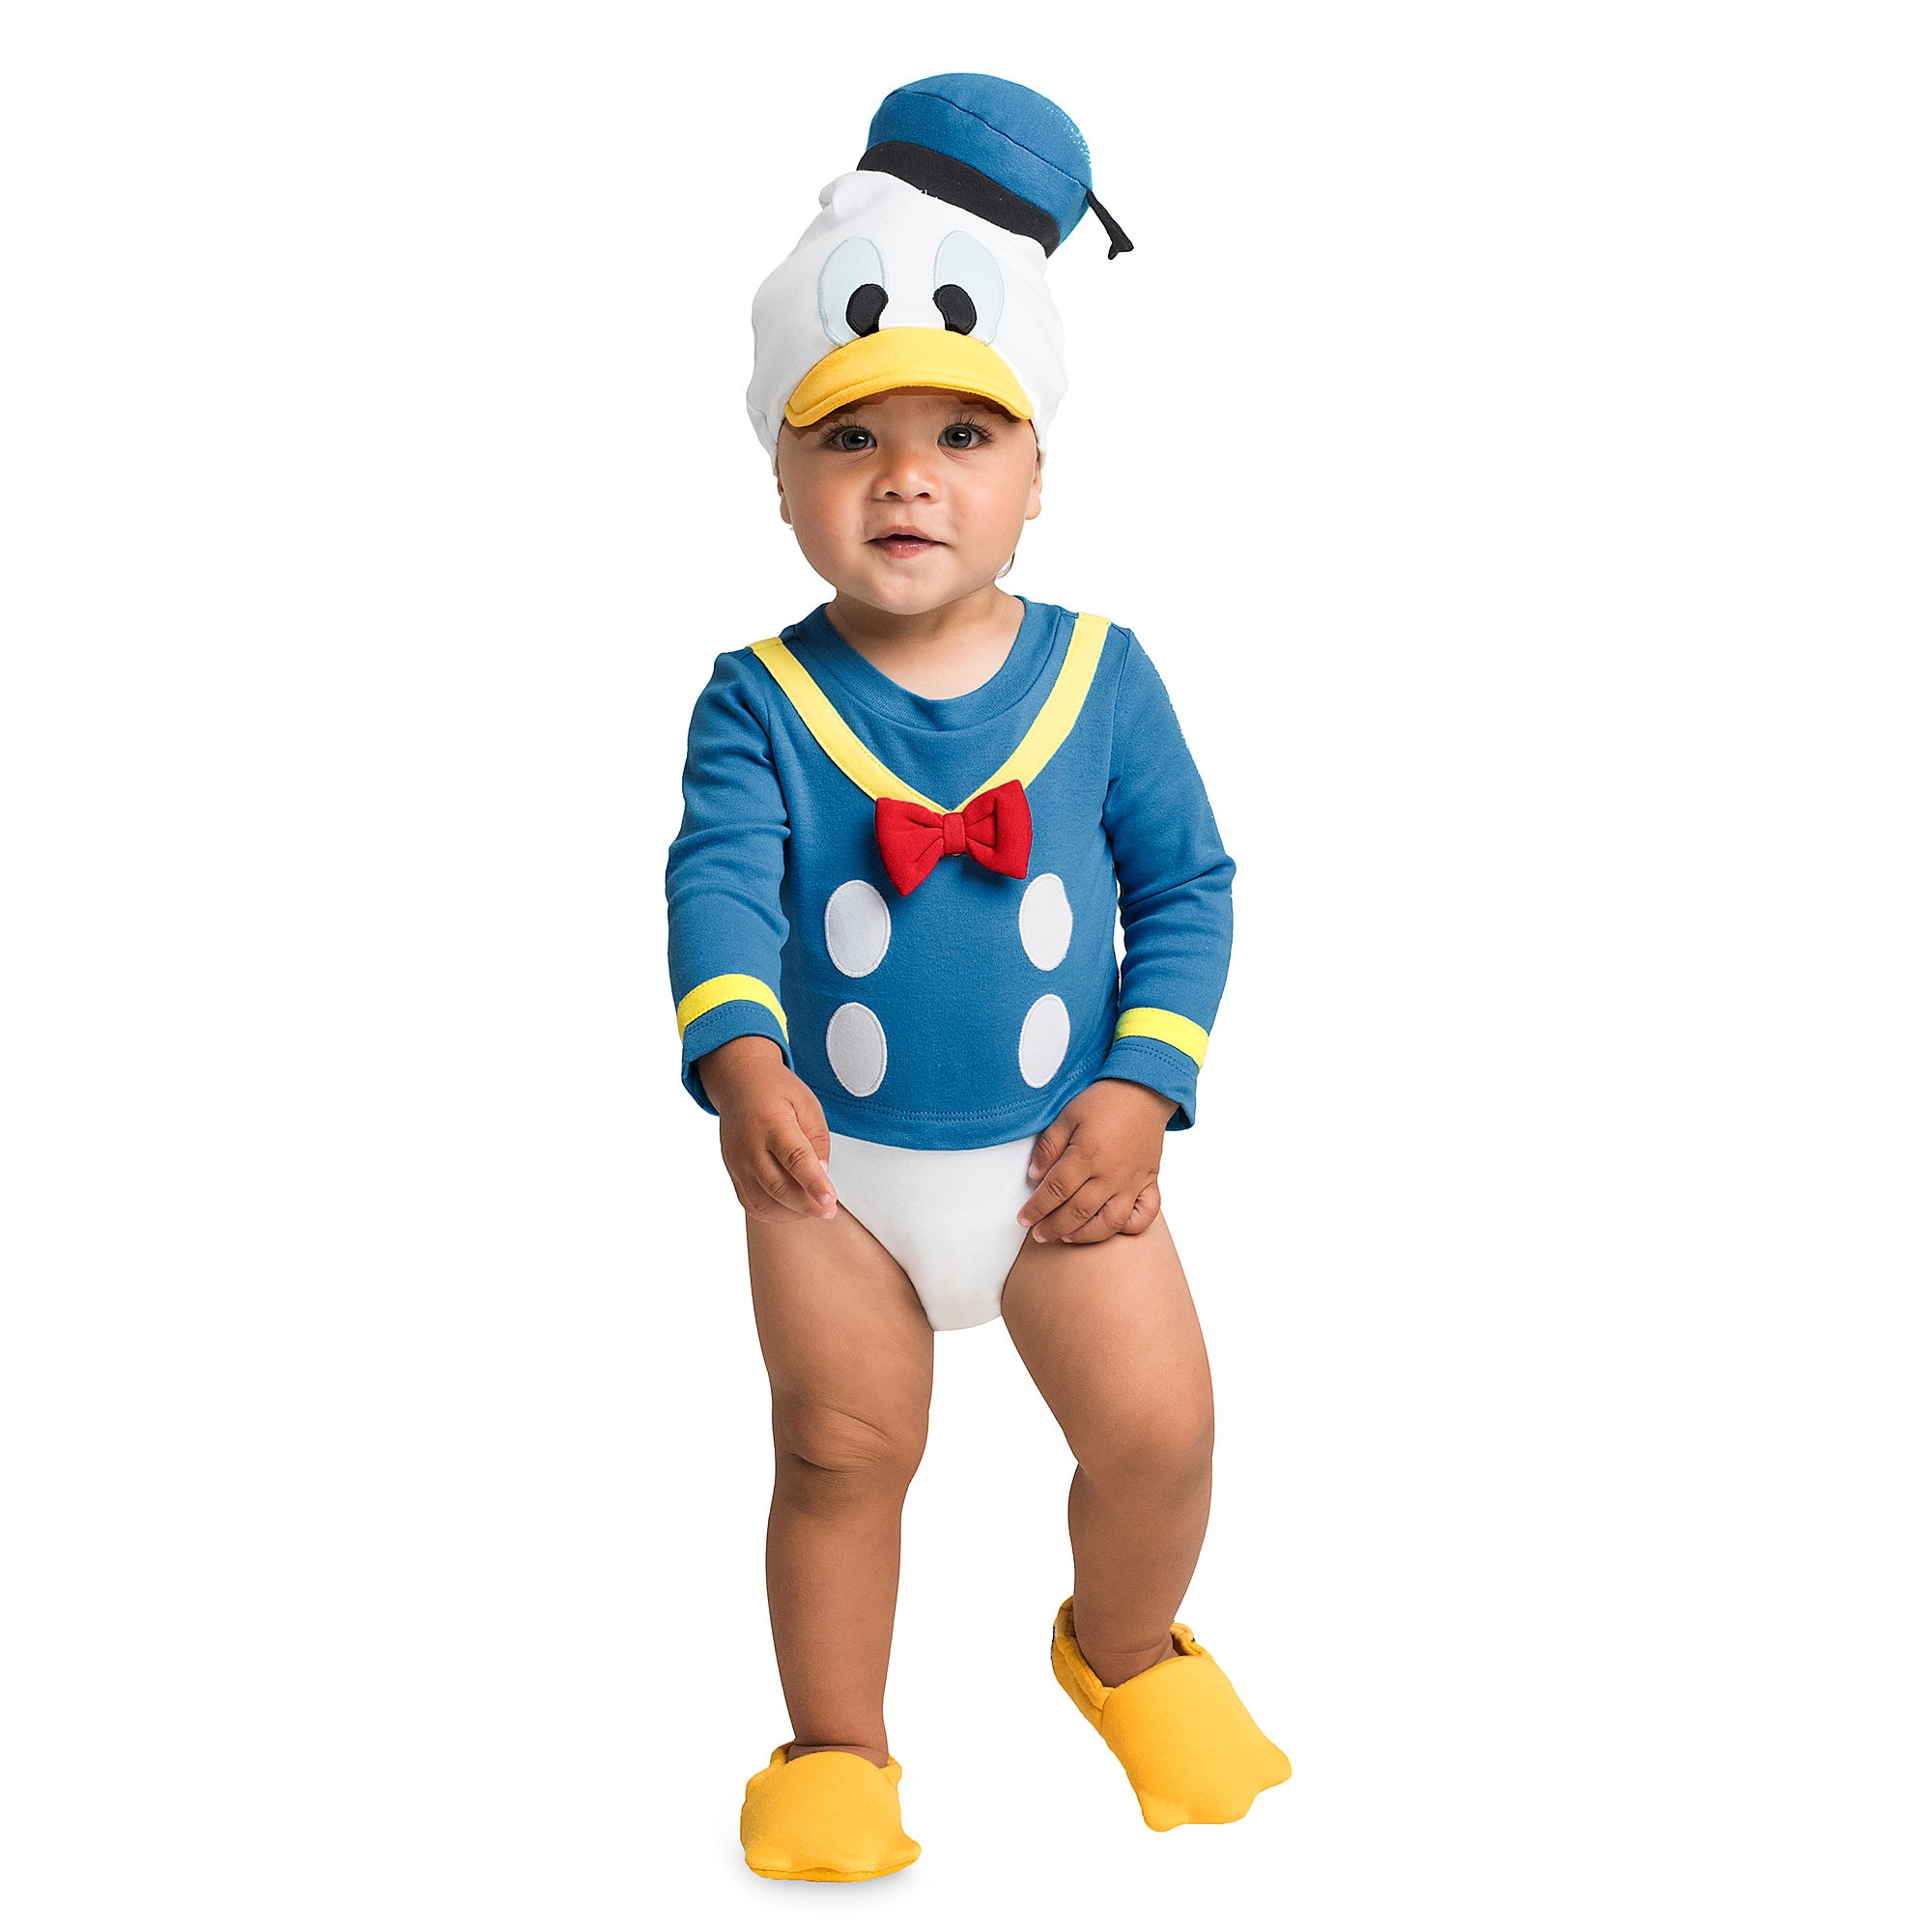 Donald Duck Costume Bodysuit for Baby  sc 1 st  shopDisney & Donald Duck Costume Bodysuit for Baby | shopDisney